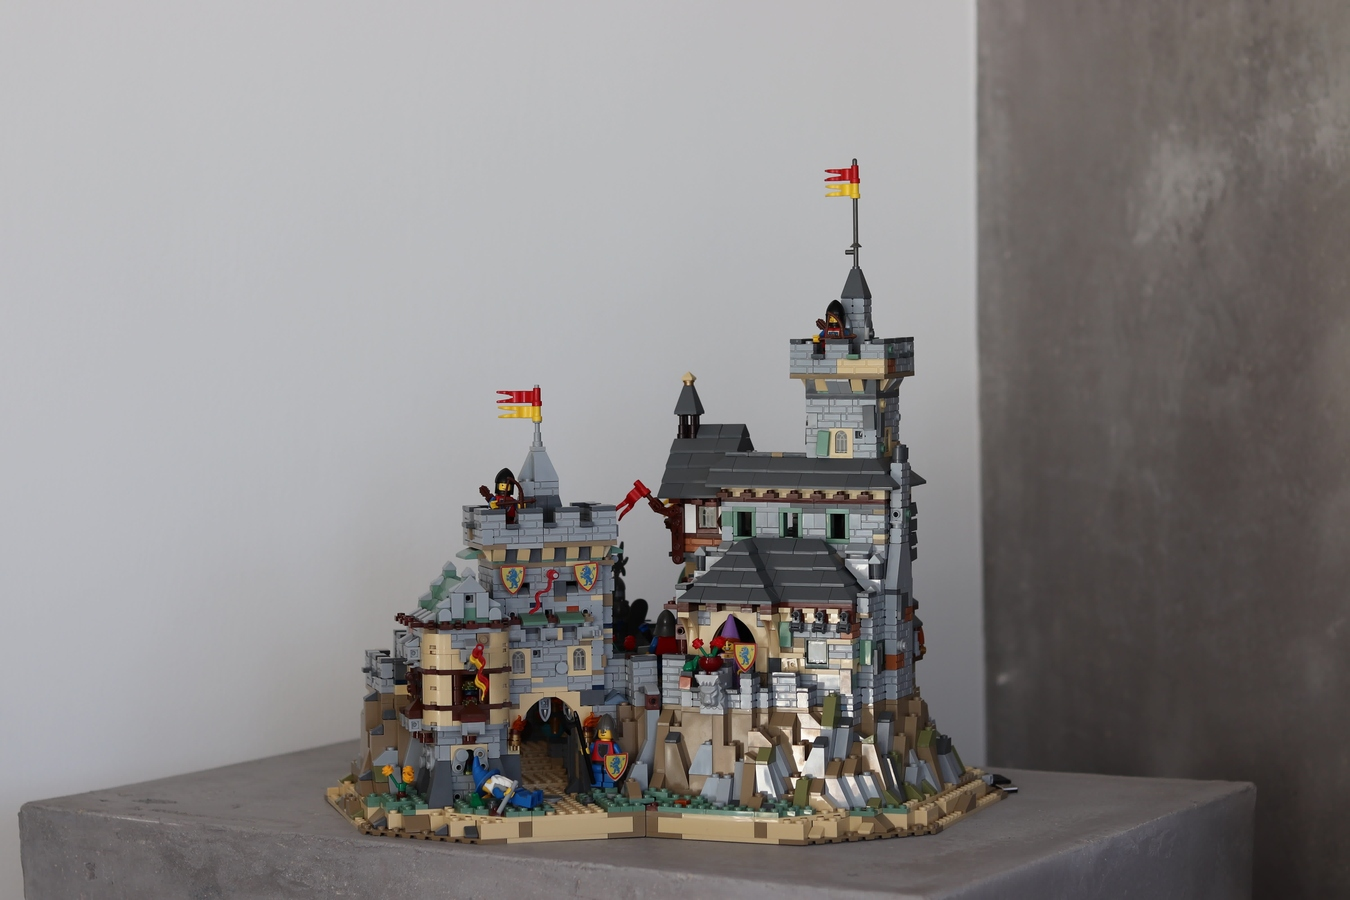 6098789-castle-moc-derboor-0002_1-thumbnail-full.jpg